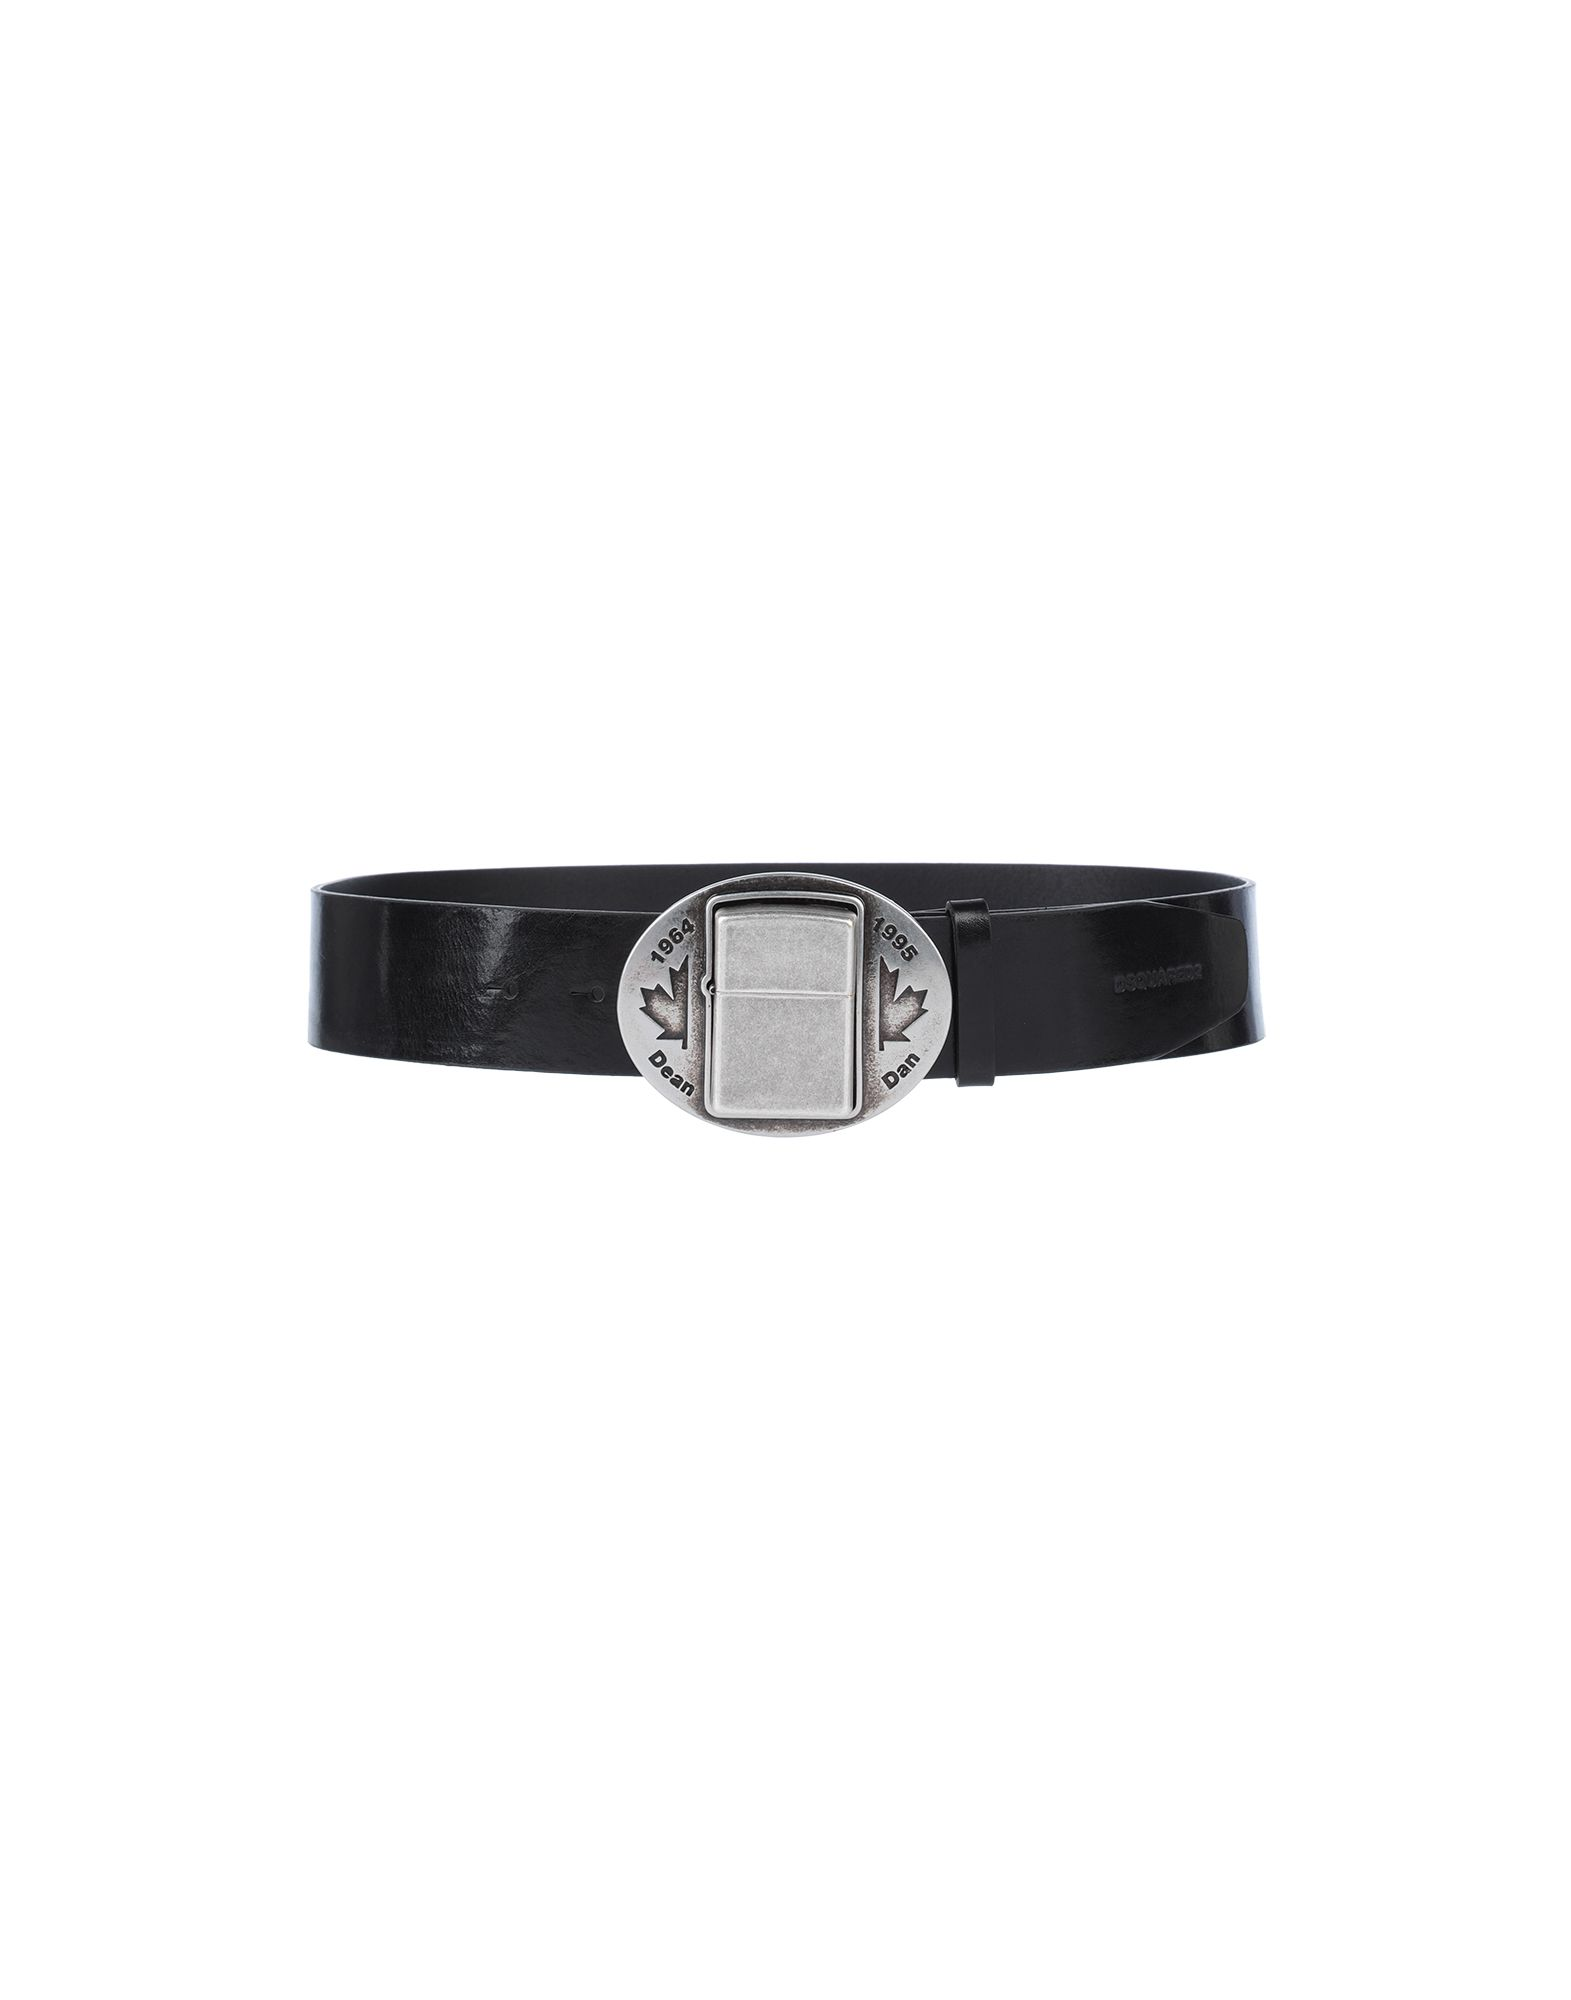 DSQUARED2 Belts. leather, logo, solid color, buckle fastening, 2-piece set, contains non-textile parts of animal origin. 100% Soft Leather